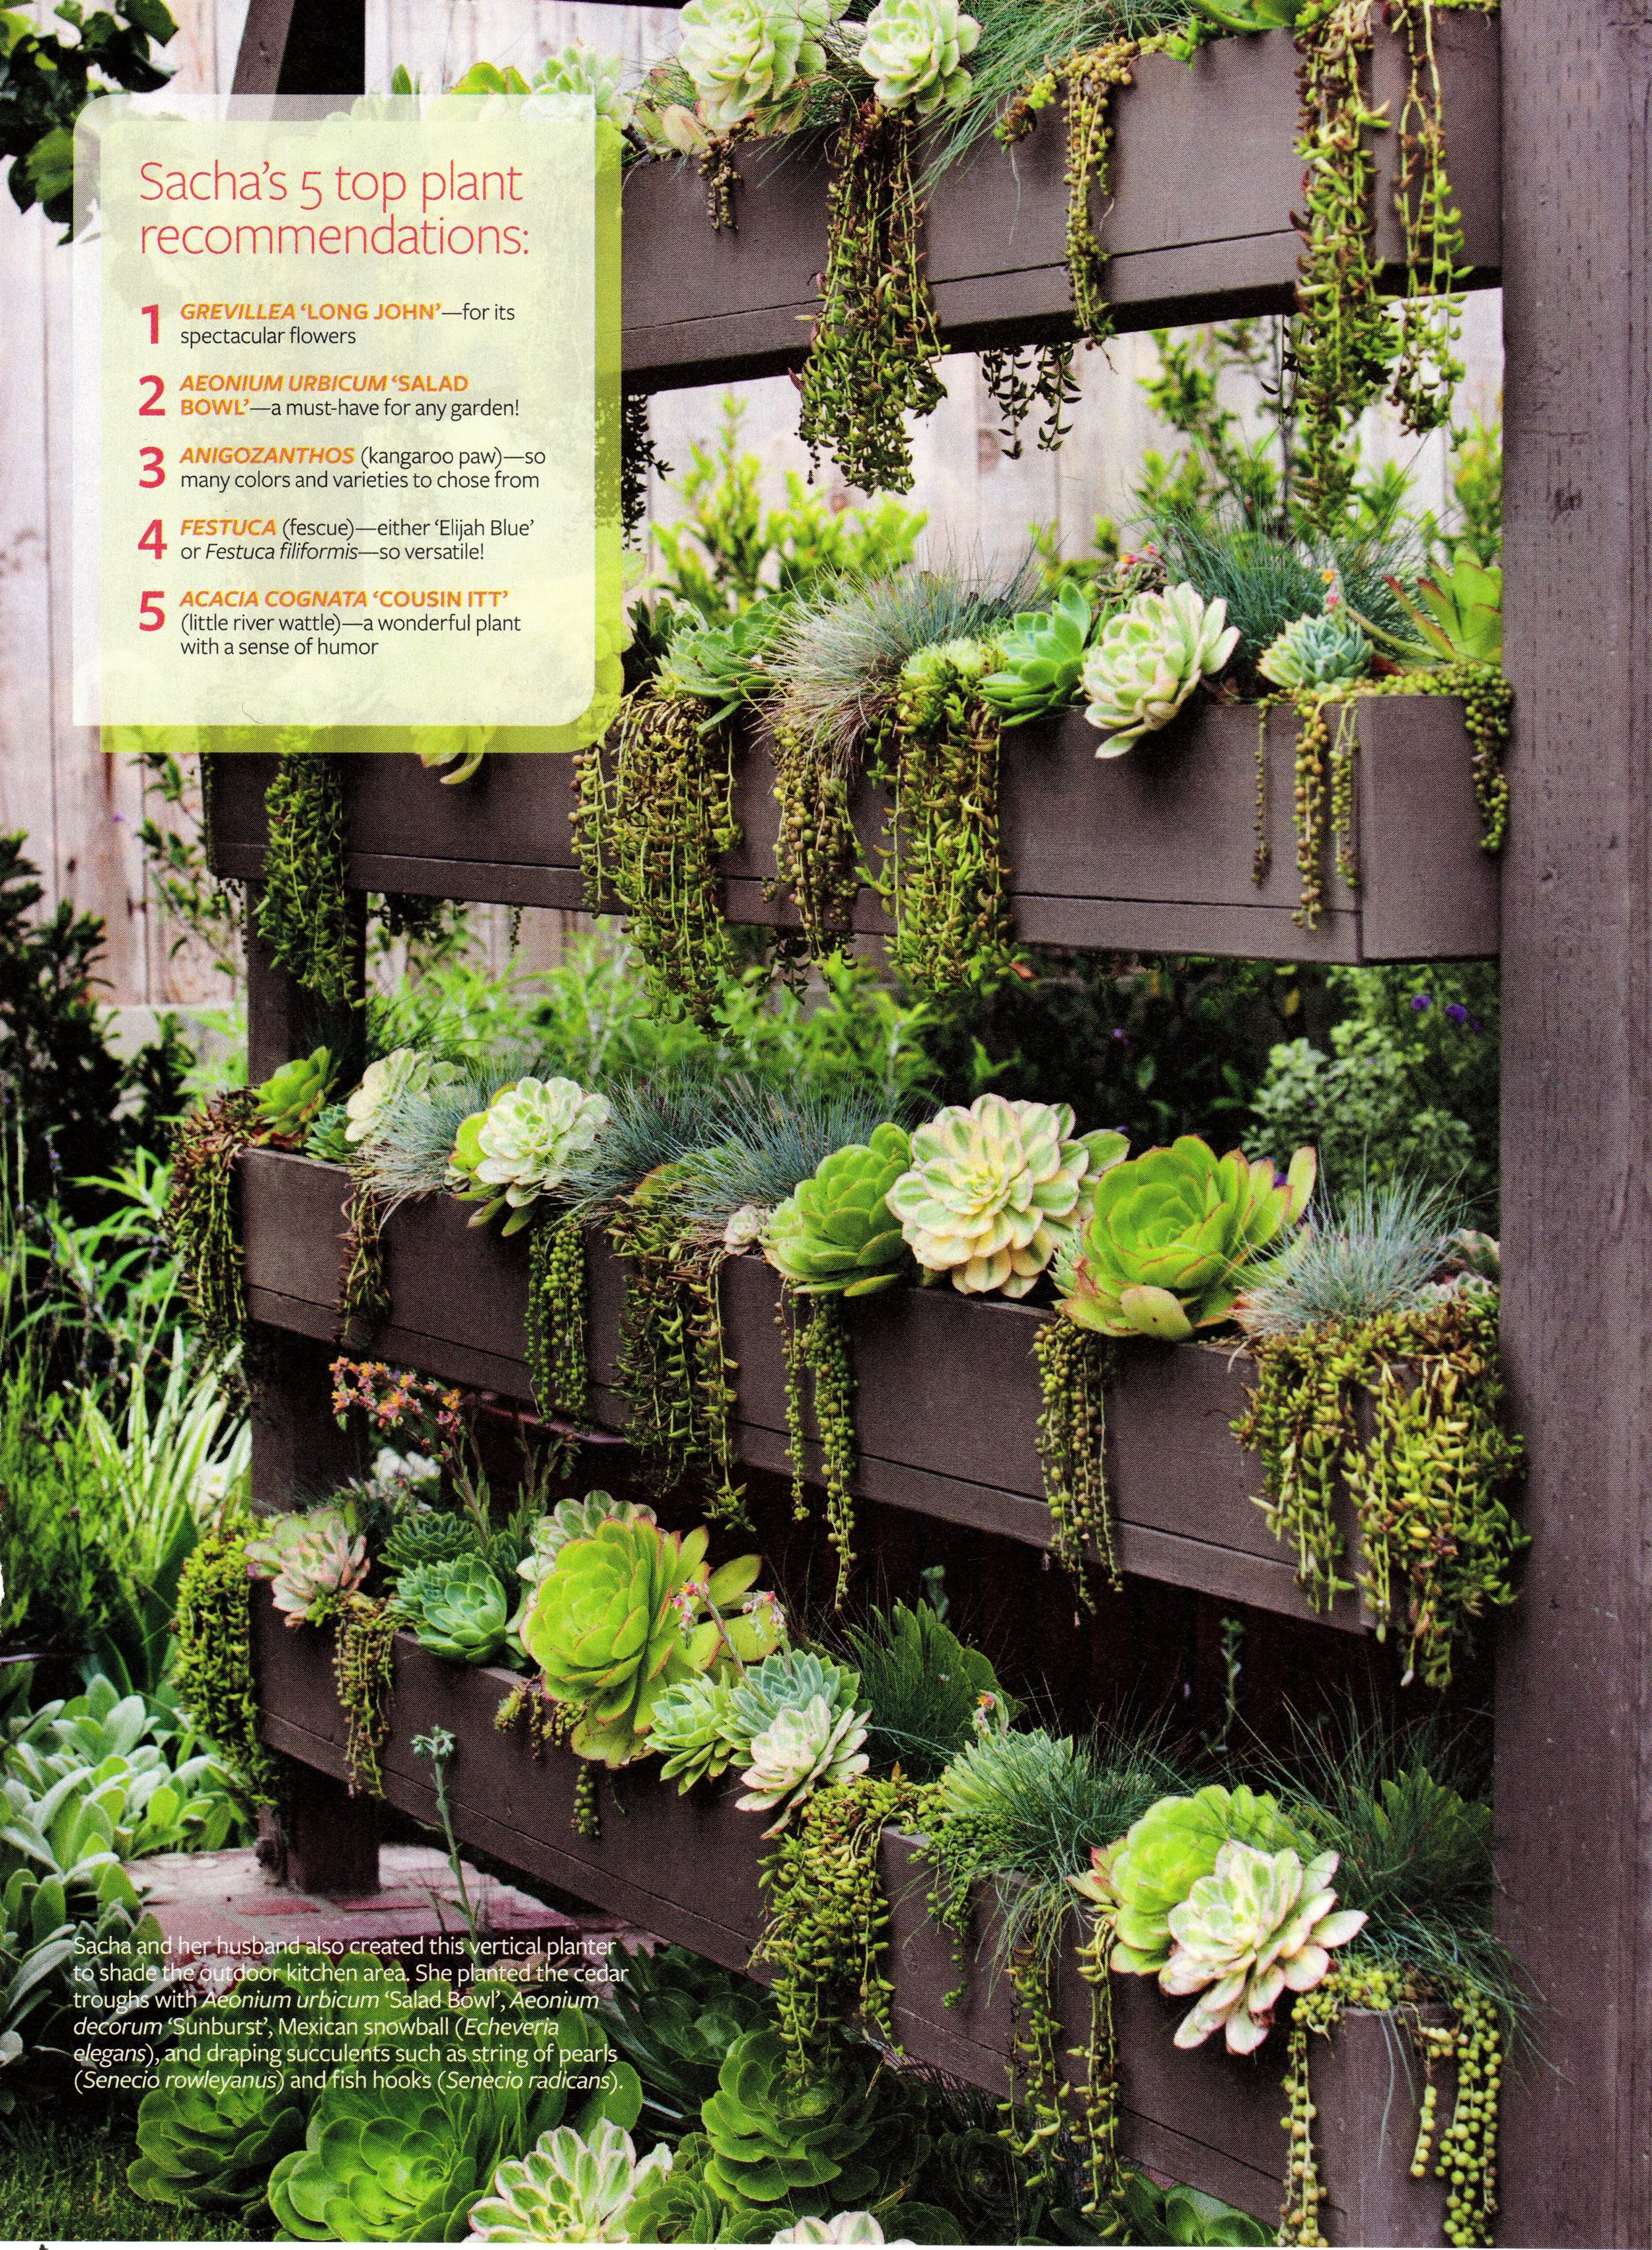 Outdoor Spaces_page 820160320_18263702.jpg